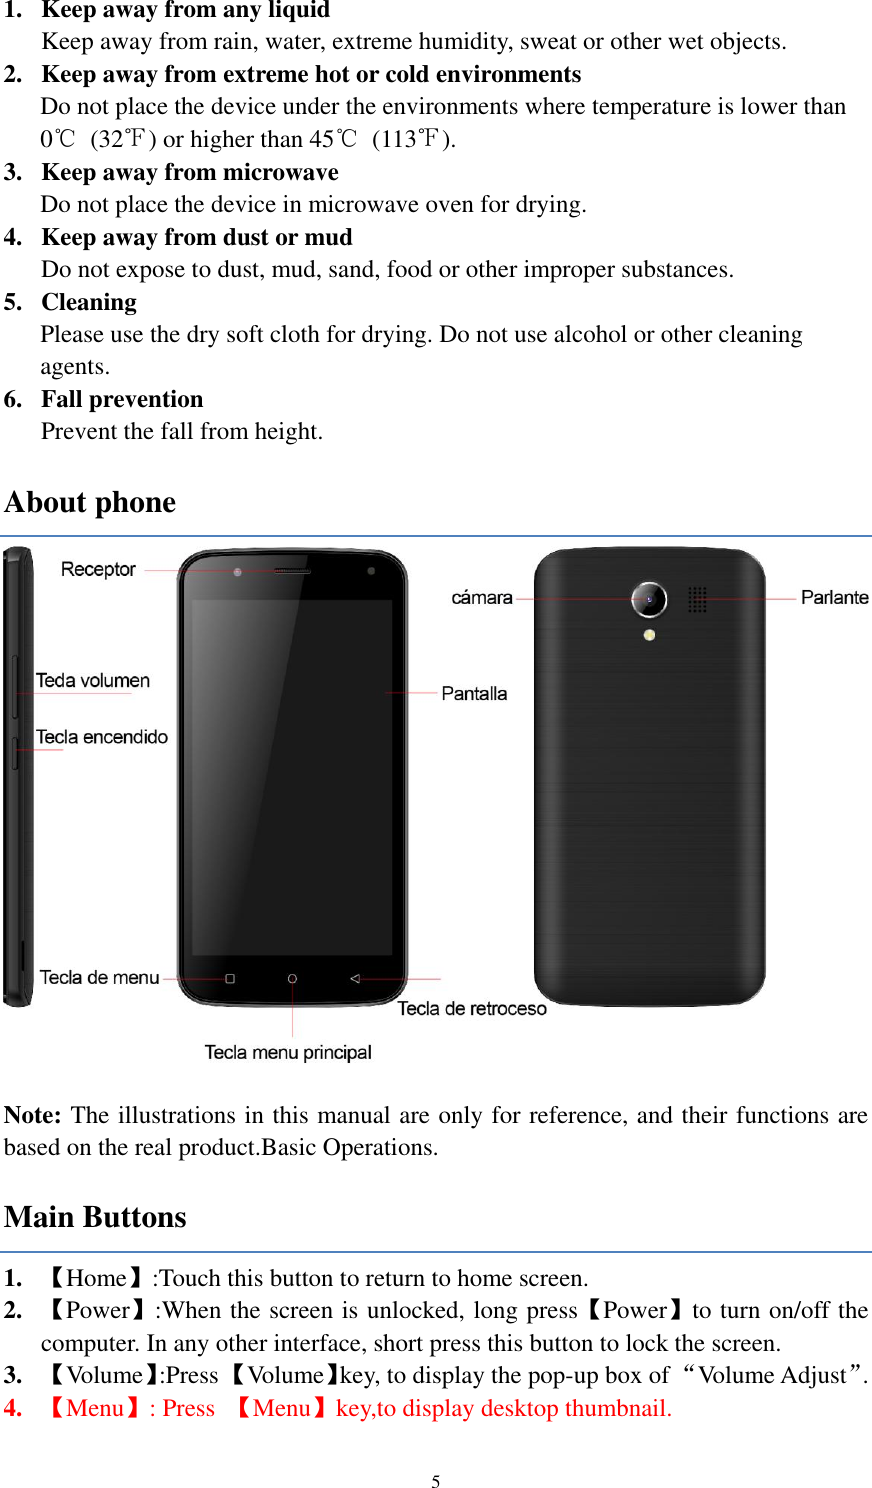 Design And Construction Of A Mobile Phone Based Home And Manual Guide